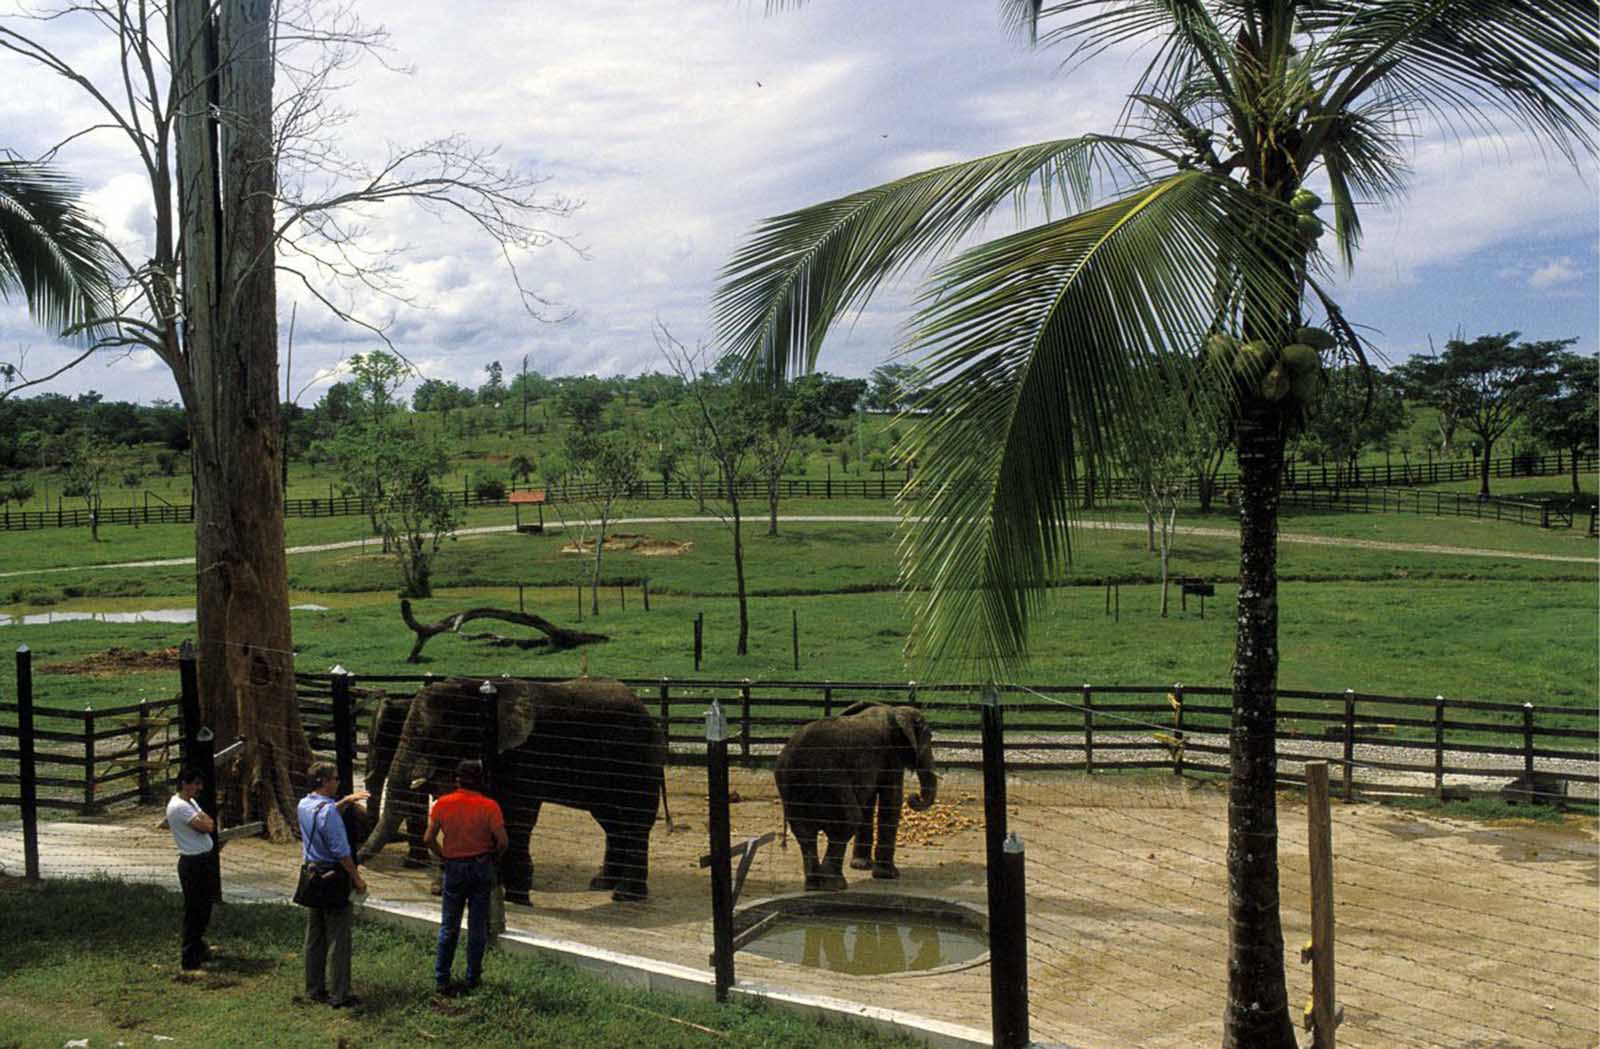 The elephants of the hacienda.